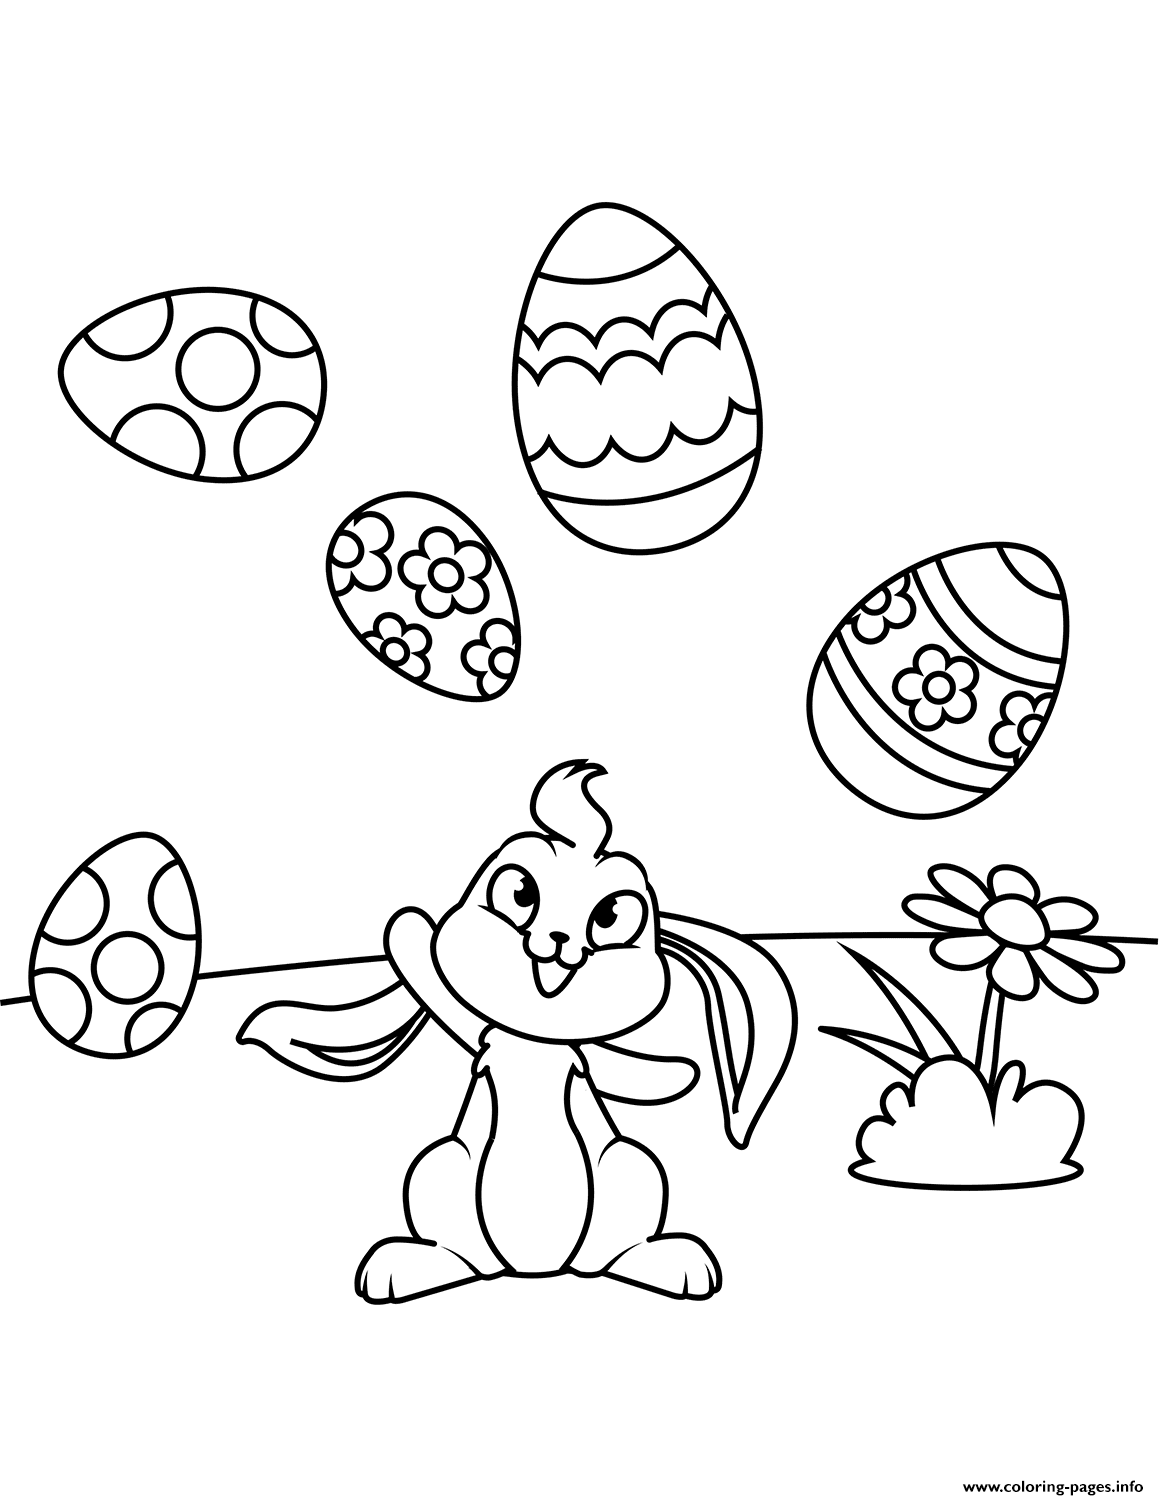 Cute Bunny Juggling Easter Eggs Coloring Pages Printable